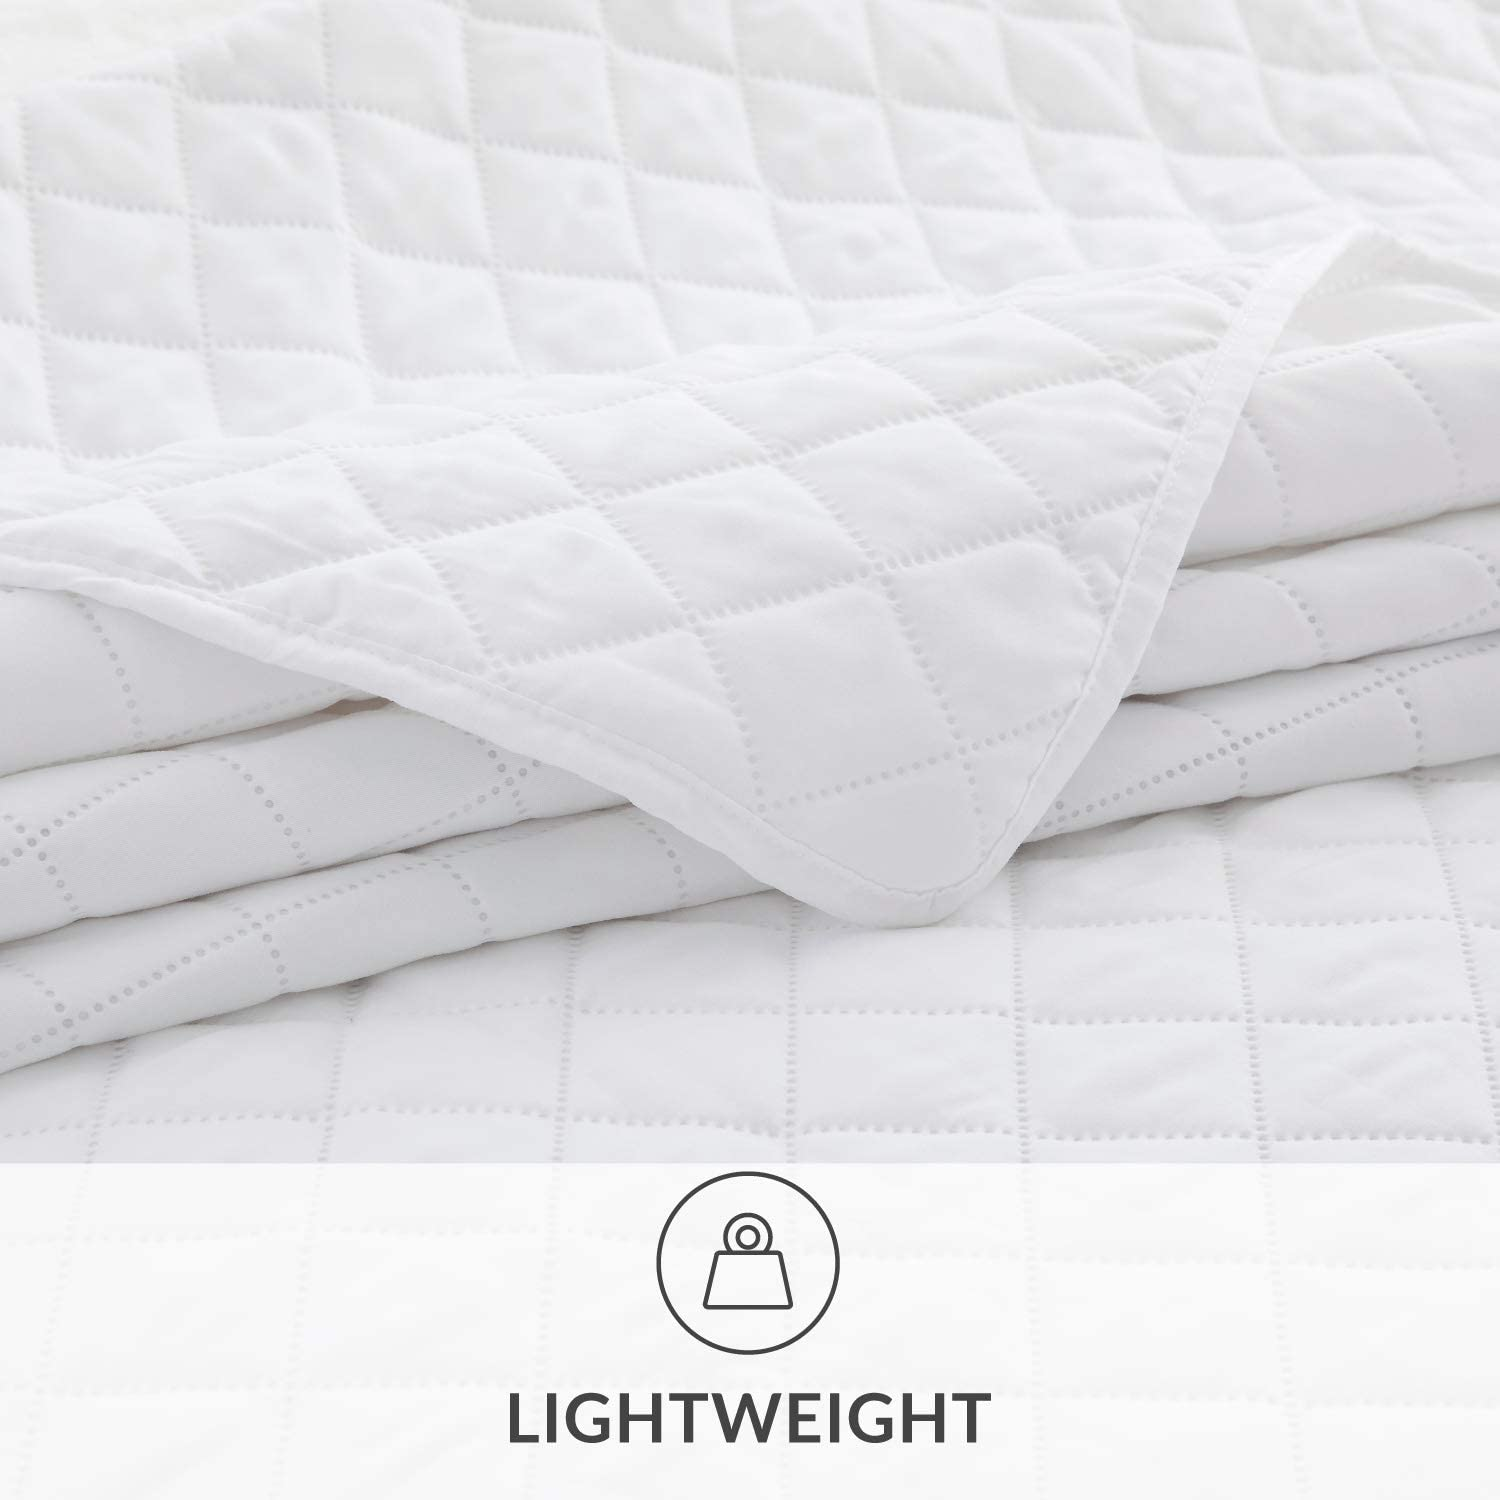 Bedsure Quilt Set White King Size (106x96 inches) - Diamond Stitched Pattern - Soft Microfiber Lightweight Coverlet Bedspread for All Season - 3 Piece Reversible (Includes 1 Quilt, 2 Shams)